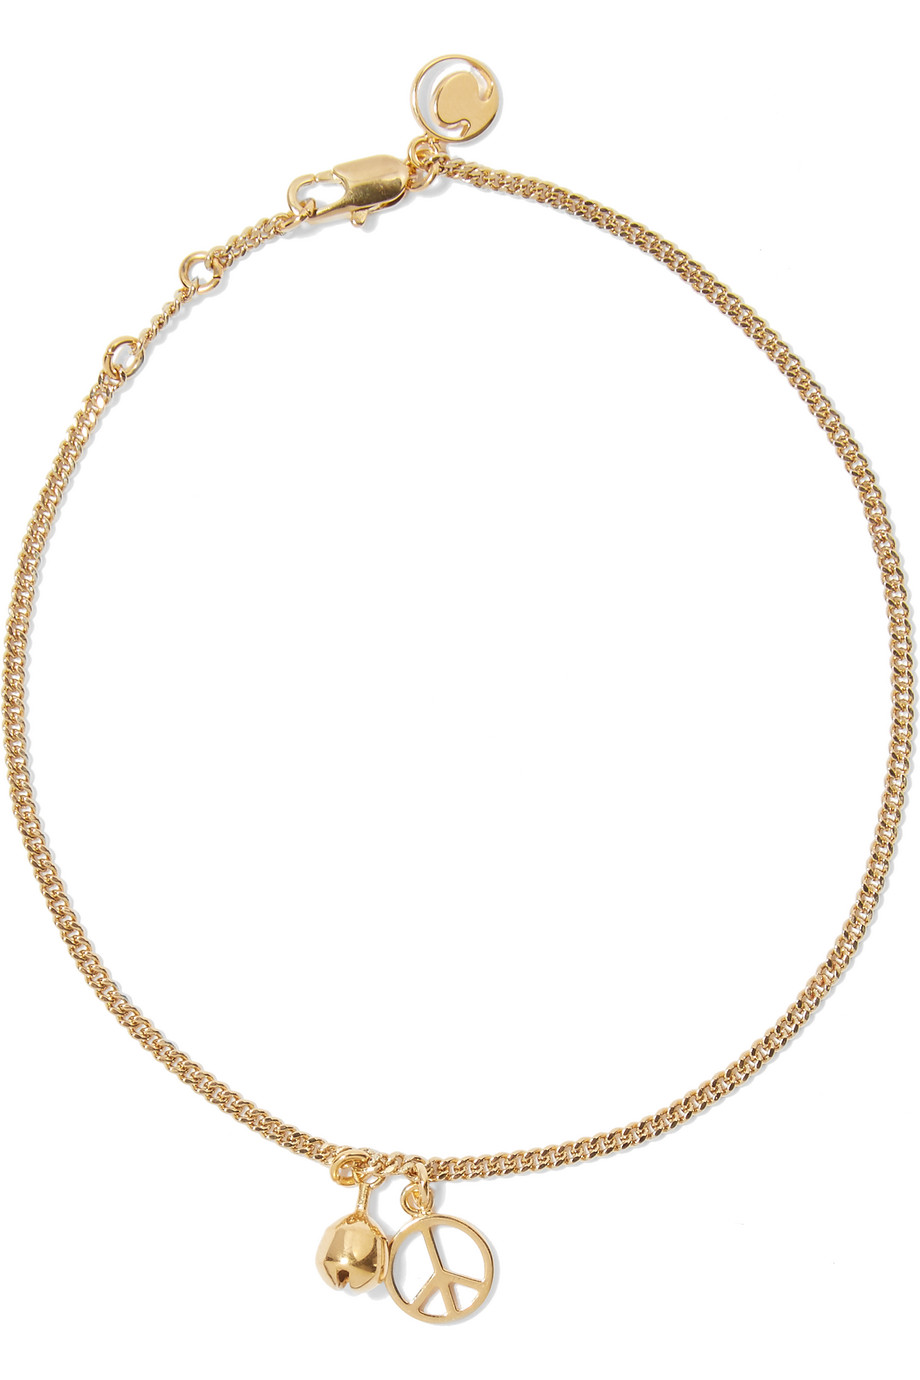 Chloé Gold-Plated Anklet, Women's